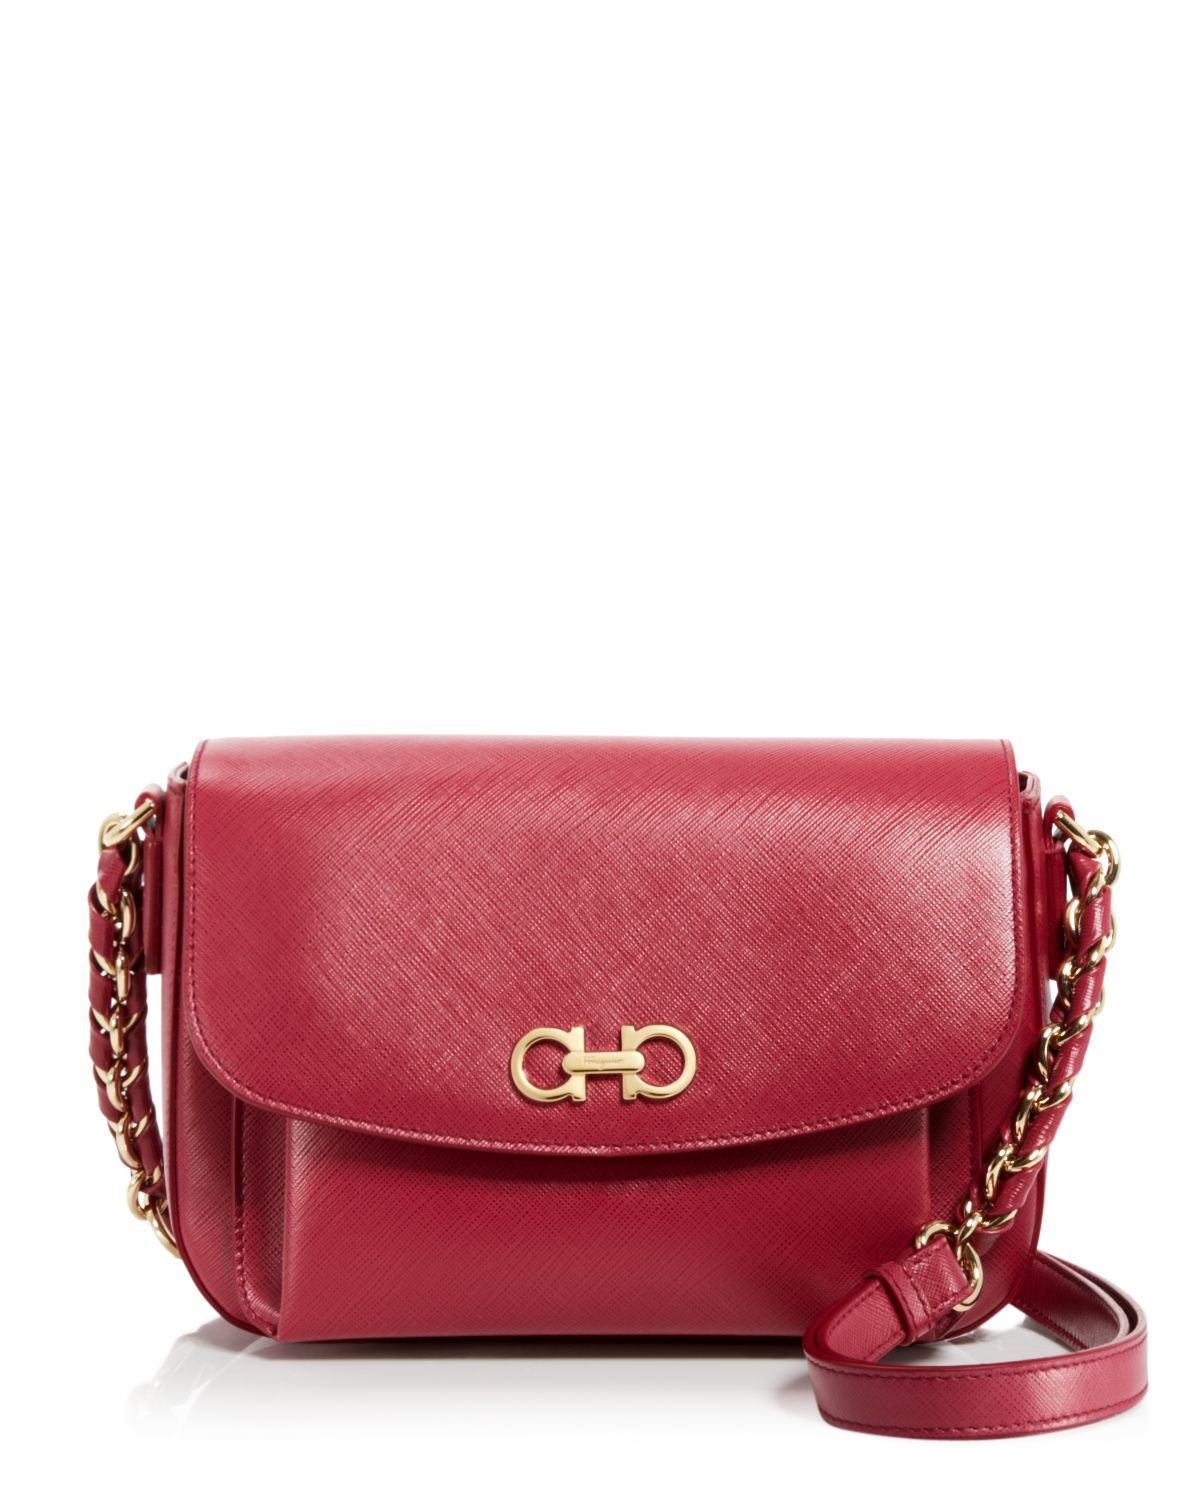 5b18cfb195 Snap Ferragamo Shoulder Bag Sandrine in Black Vin Red Lyst photos on ...